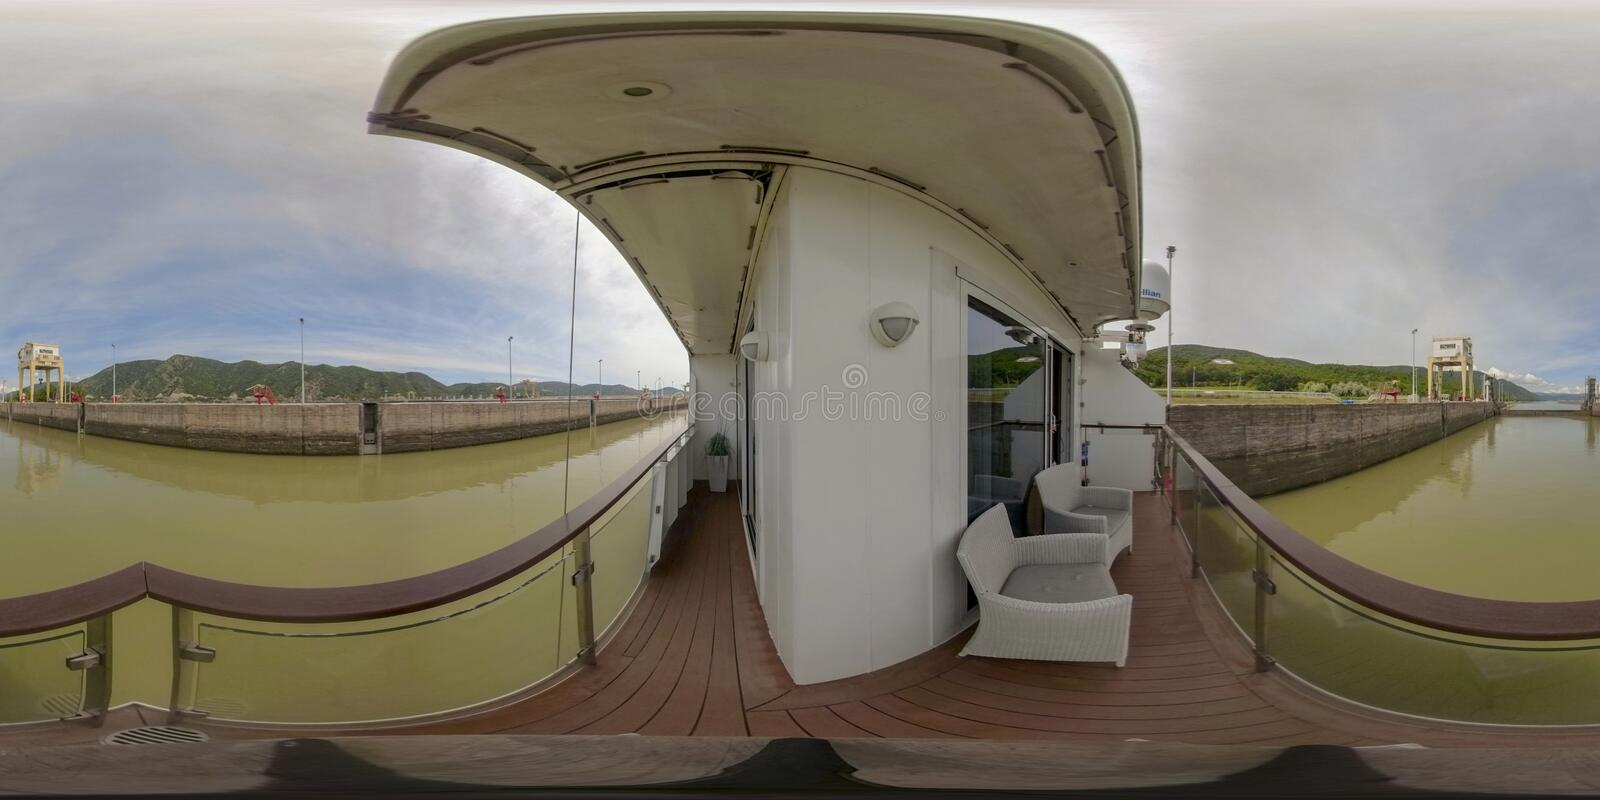 360VR Cruising through locks at  Iron Gate2. 360VR cruising on riverboat through the Iron Gate 2 hydroelectric power plant locks on the Danube River between stock photo